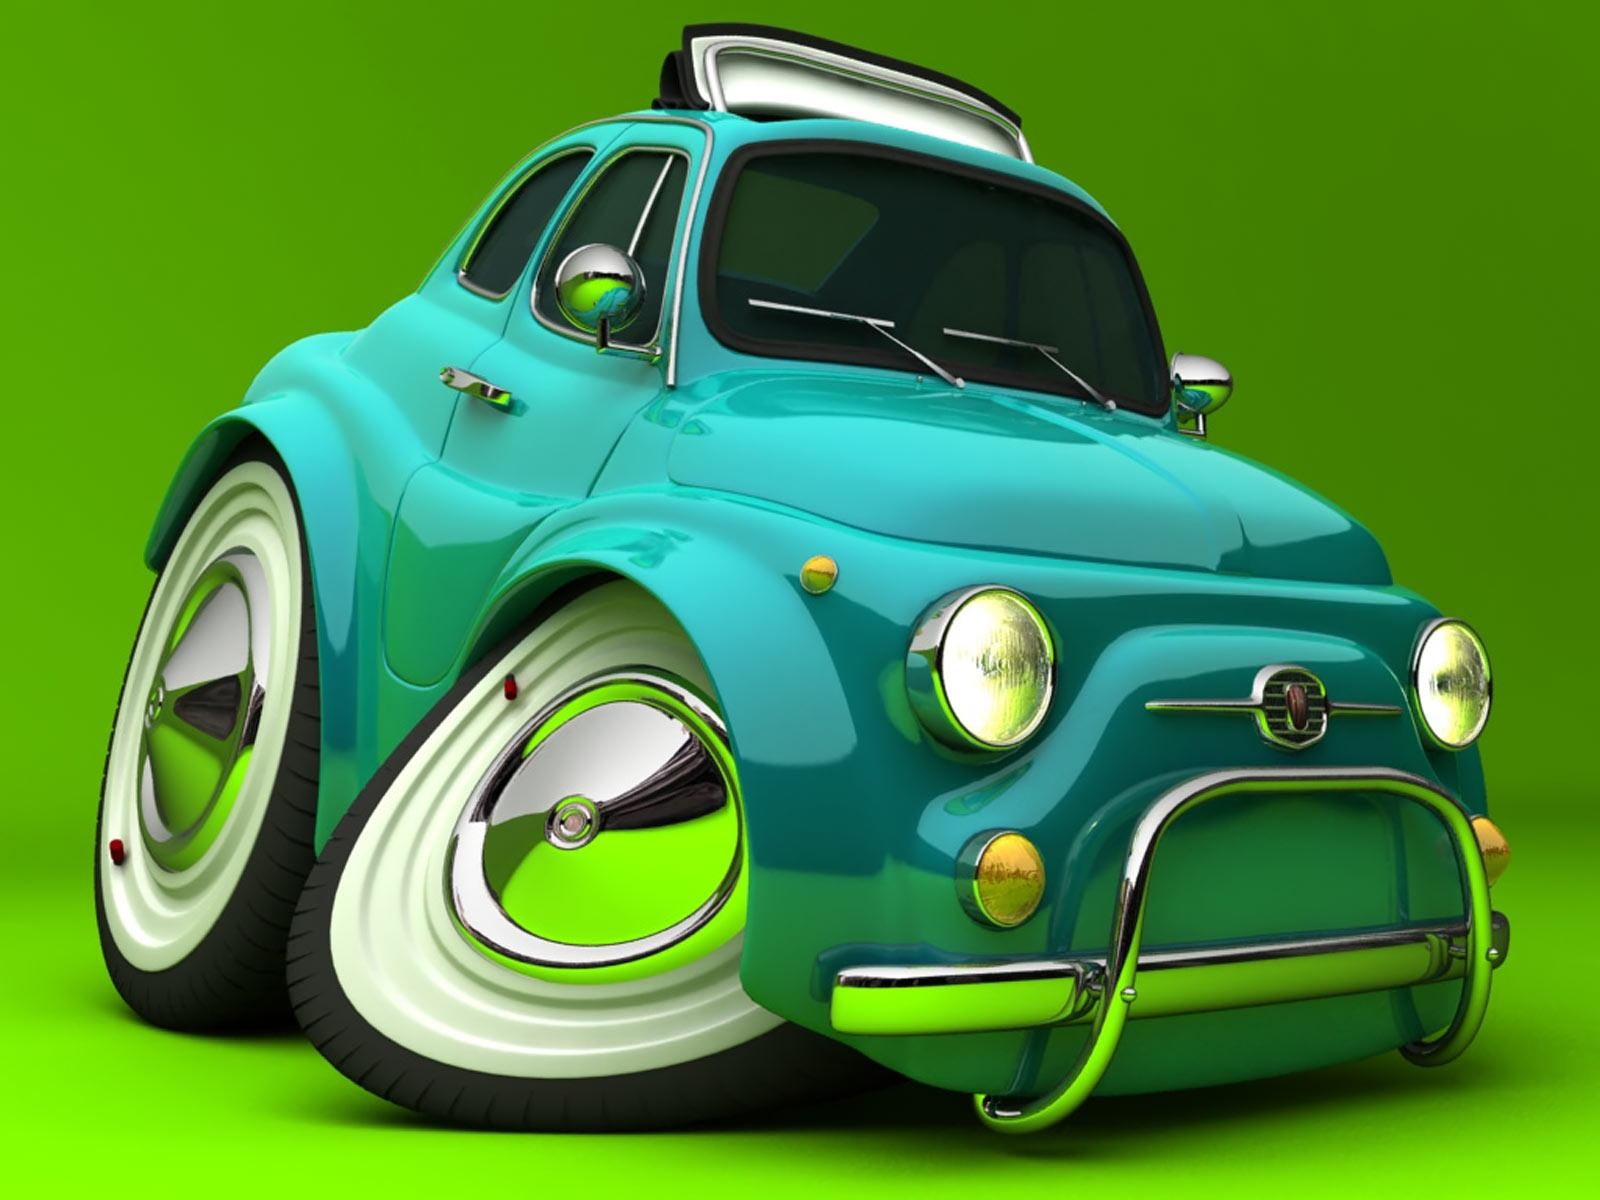 3D Car Wallpapers My First 3D Car Backgrounds My First 3D Car 1600x1200